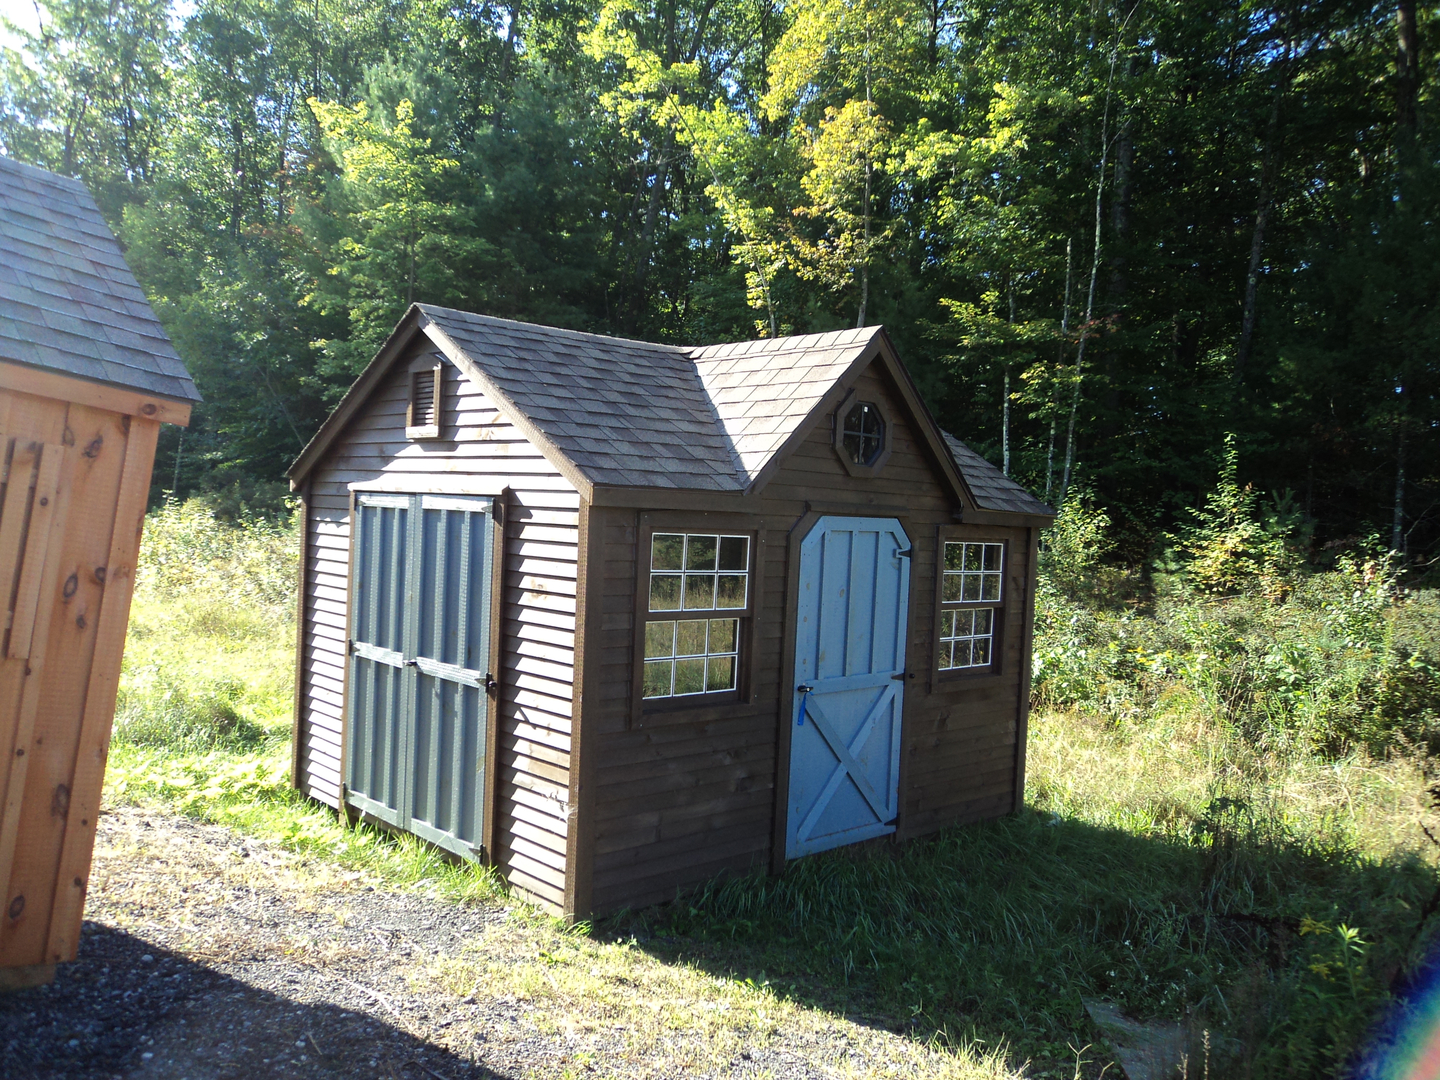 Deluxe with dormer transom windows and cupola -  Shed